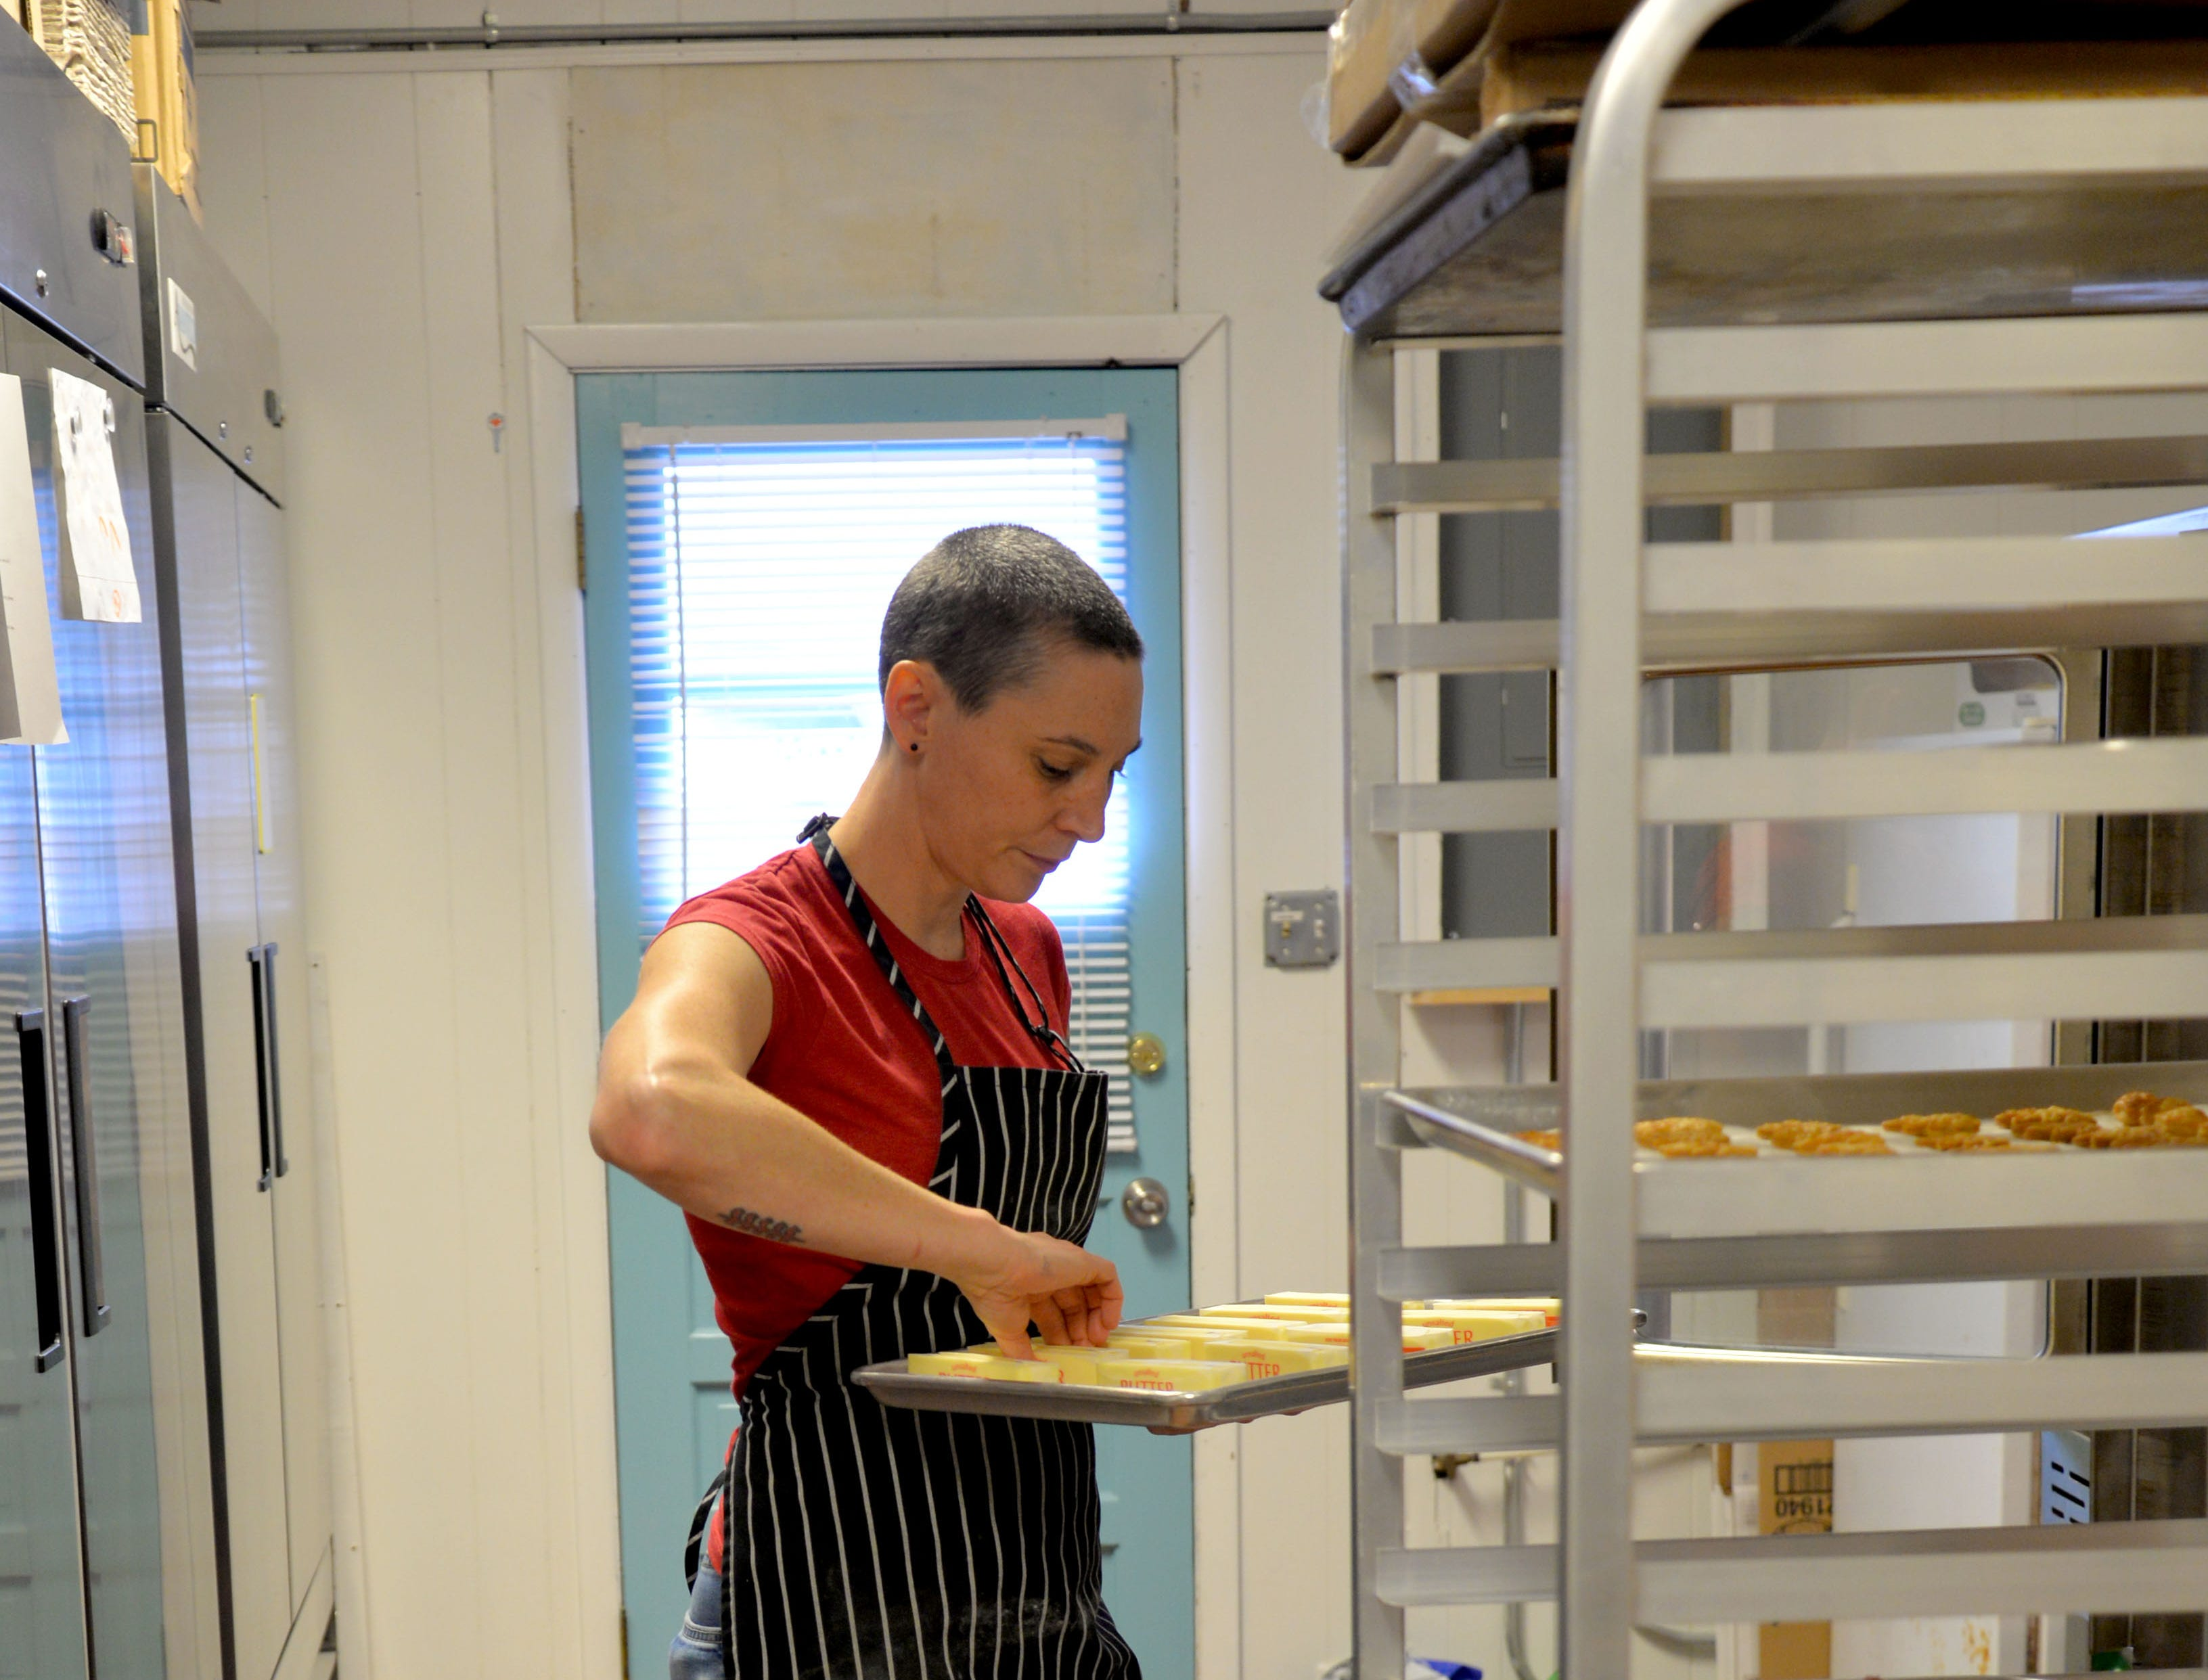 Jane Firkin, of Firkin Pie in Staunton, prepares for a big Thanksgiving order on Tuesday, Nov. 20, 2018. She opened her shop on Kalorama Street in March.